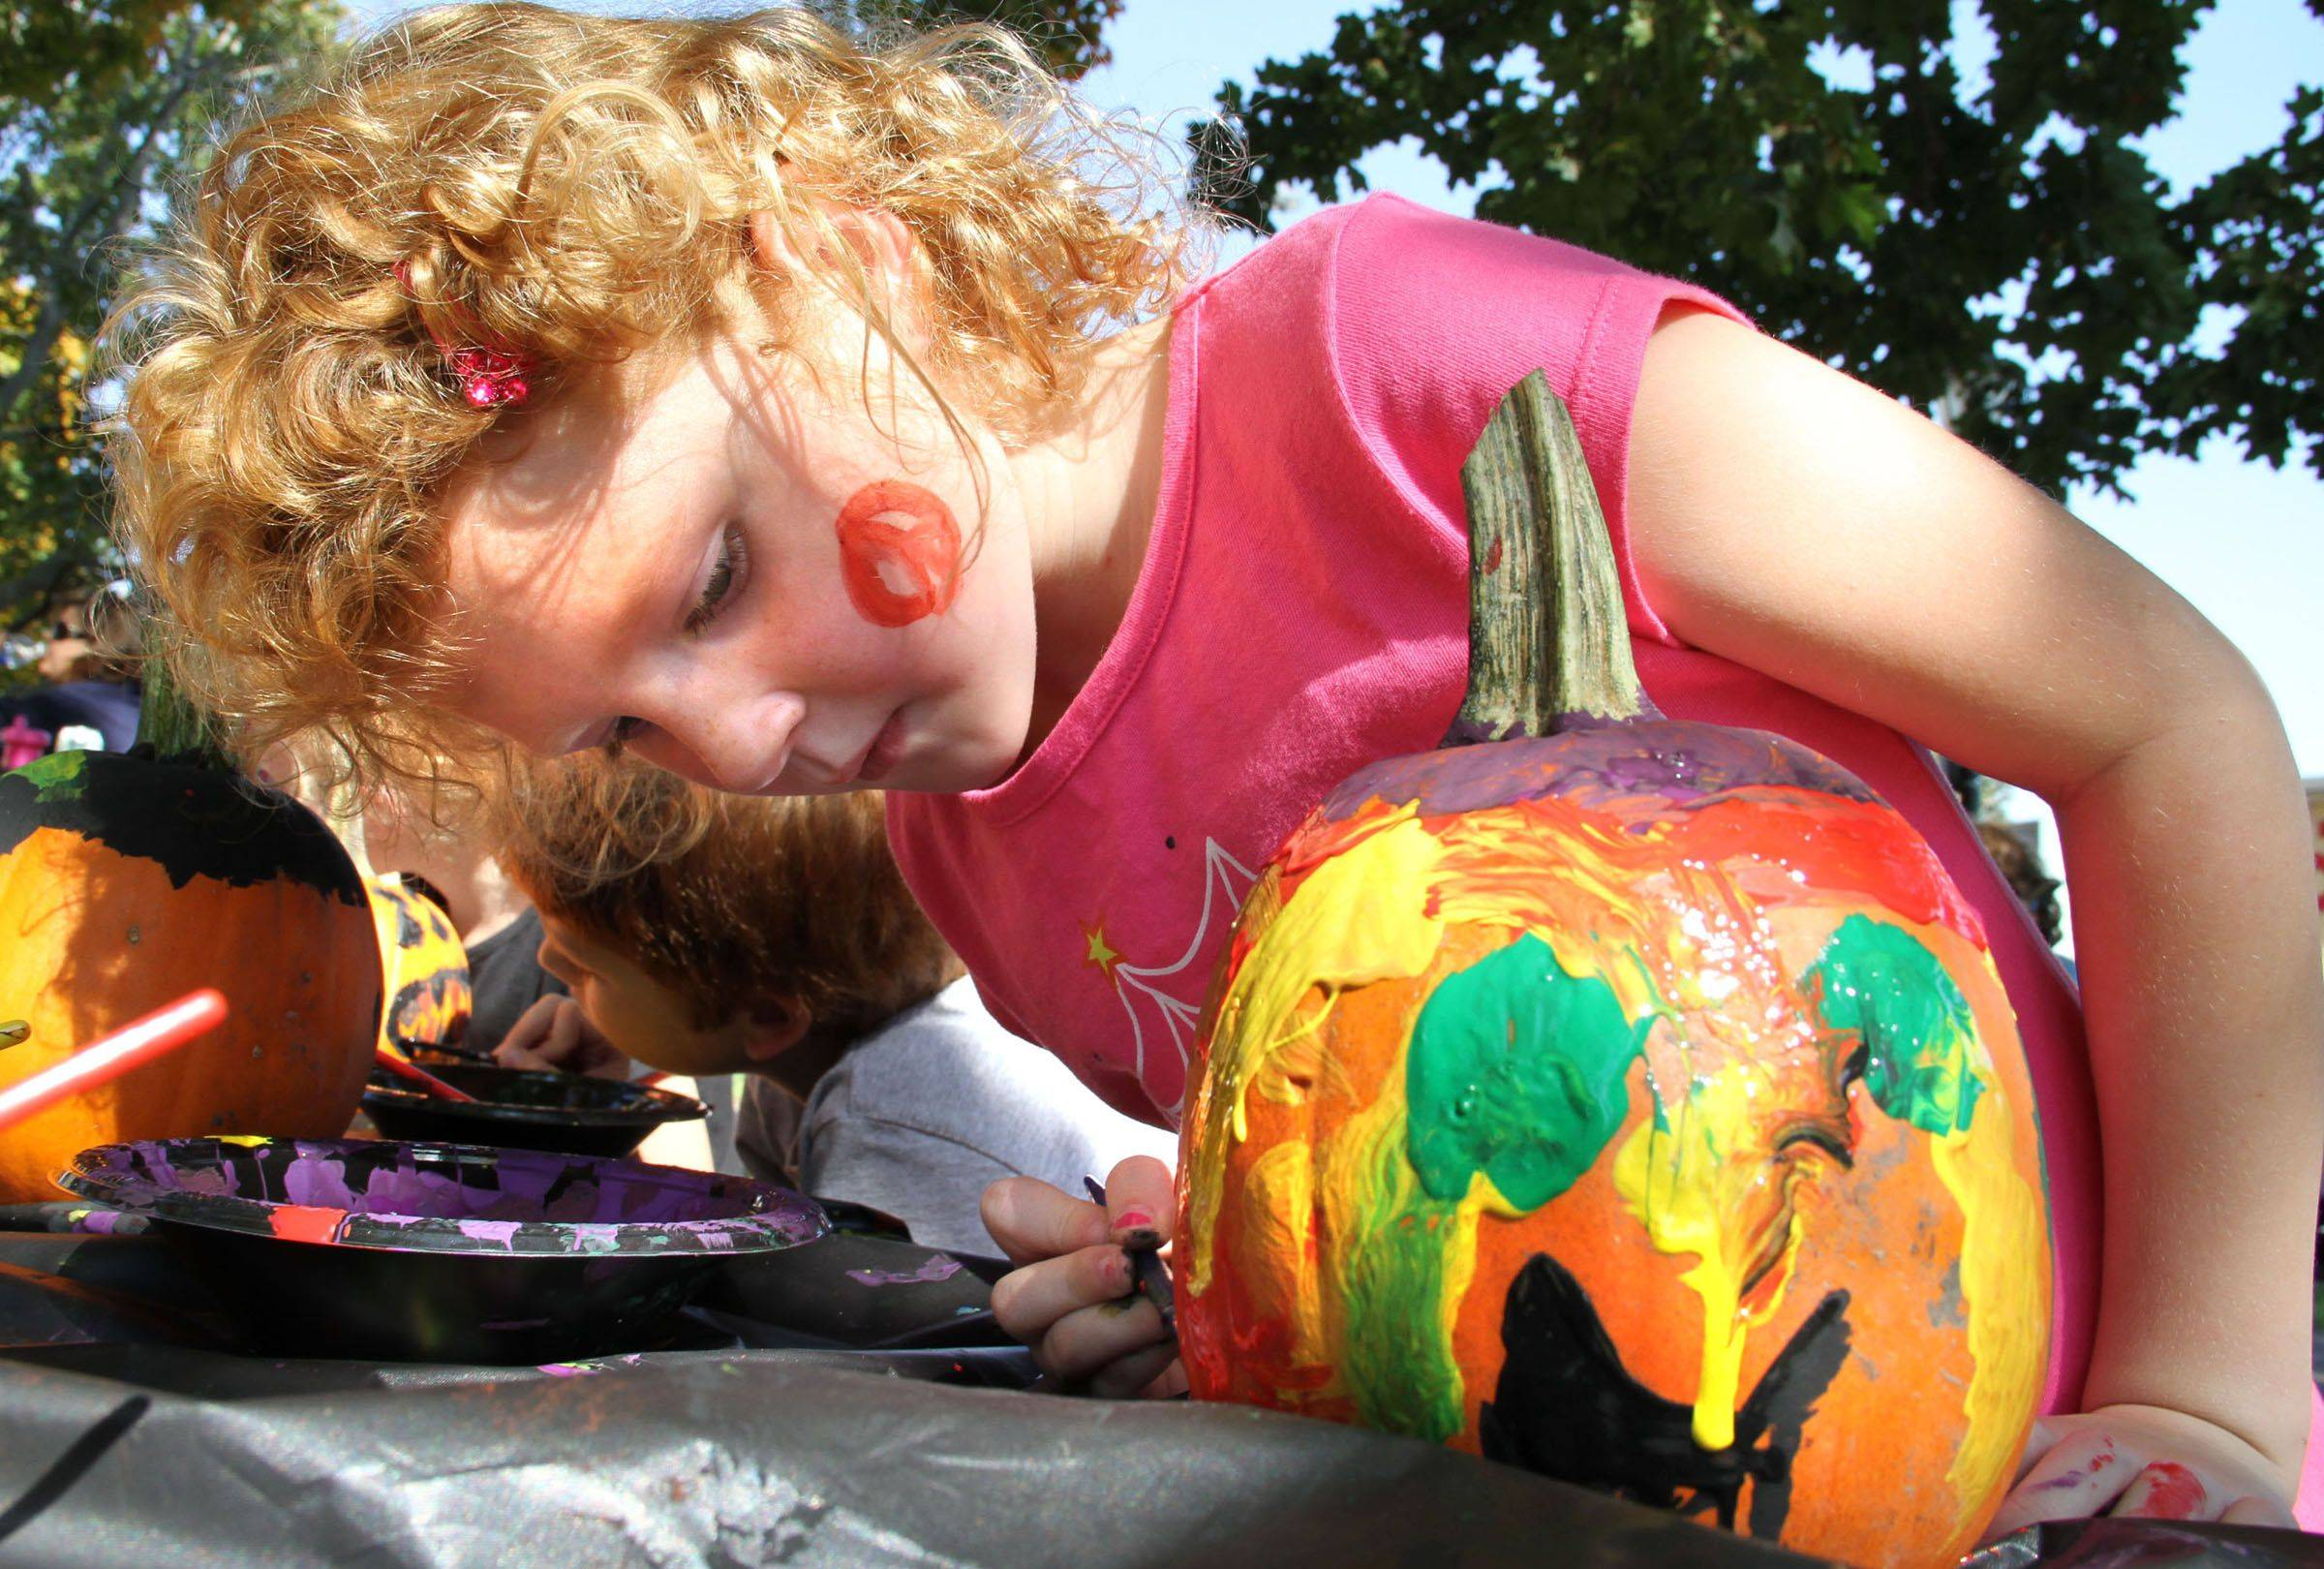 Lindsay Crowther, 5, of Gurnee, paints a pumpkin at the pumpkins, pictures and live entertainment family event Saturday at Cook Park in Libertyville.